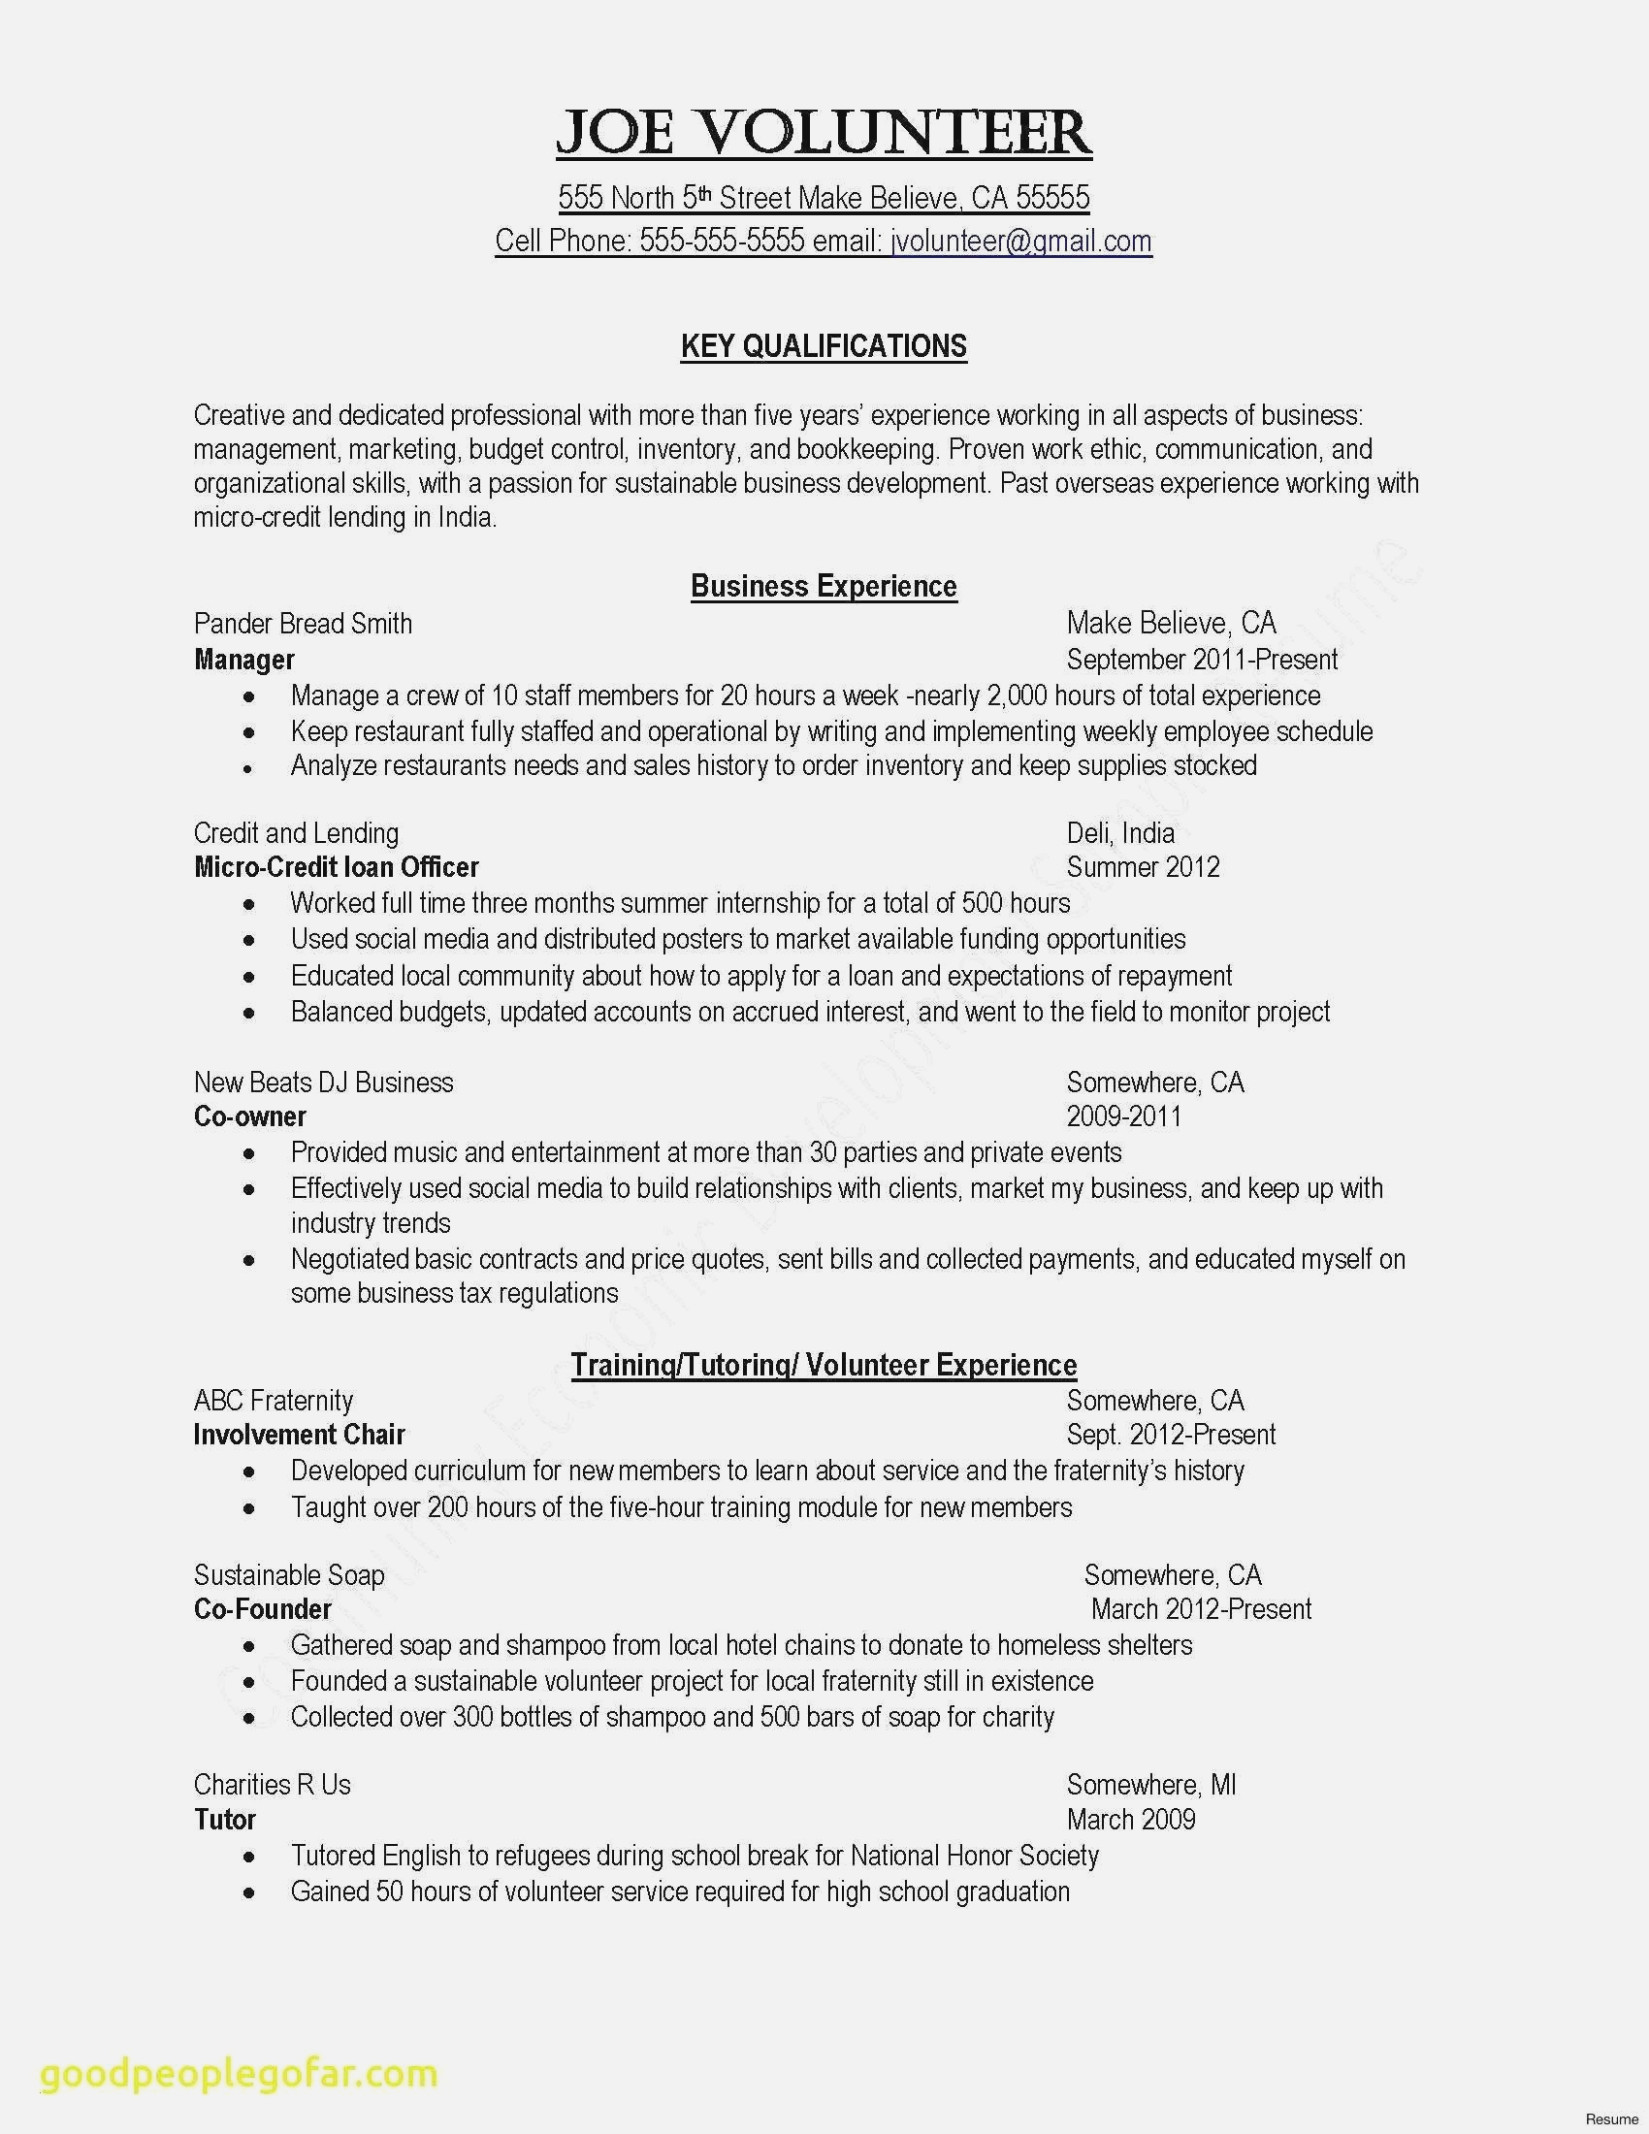 Good Objective For Resume Objectives To Put On A Resume Qualified Good Objective Resume Good Objectives To Put On A Resume good objective for resume|wikiresume.com